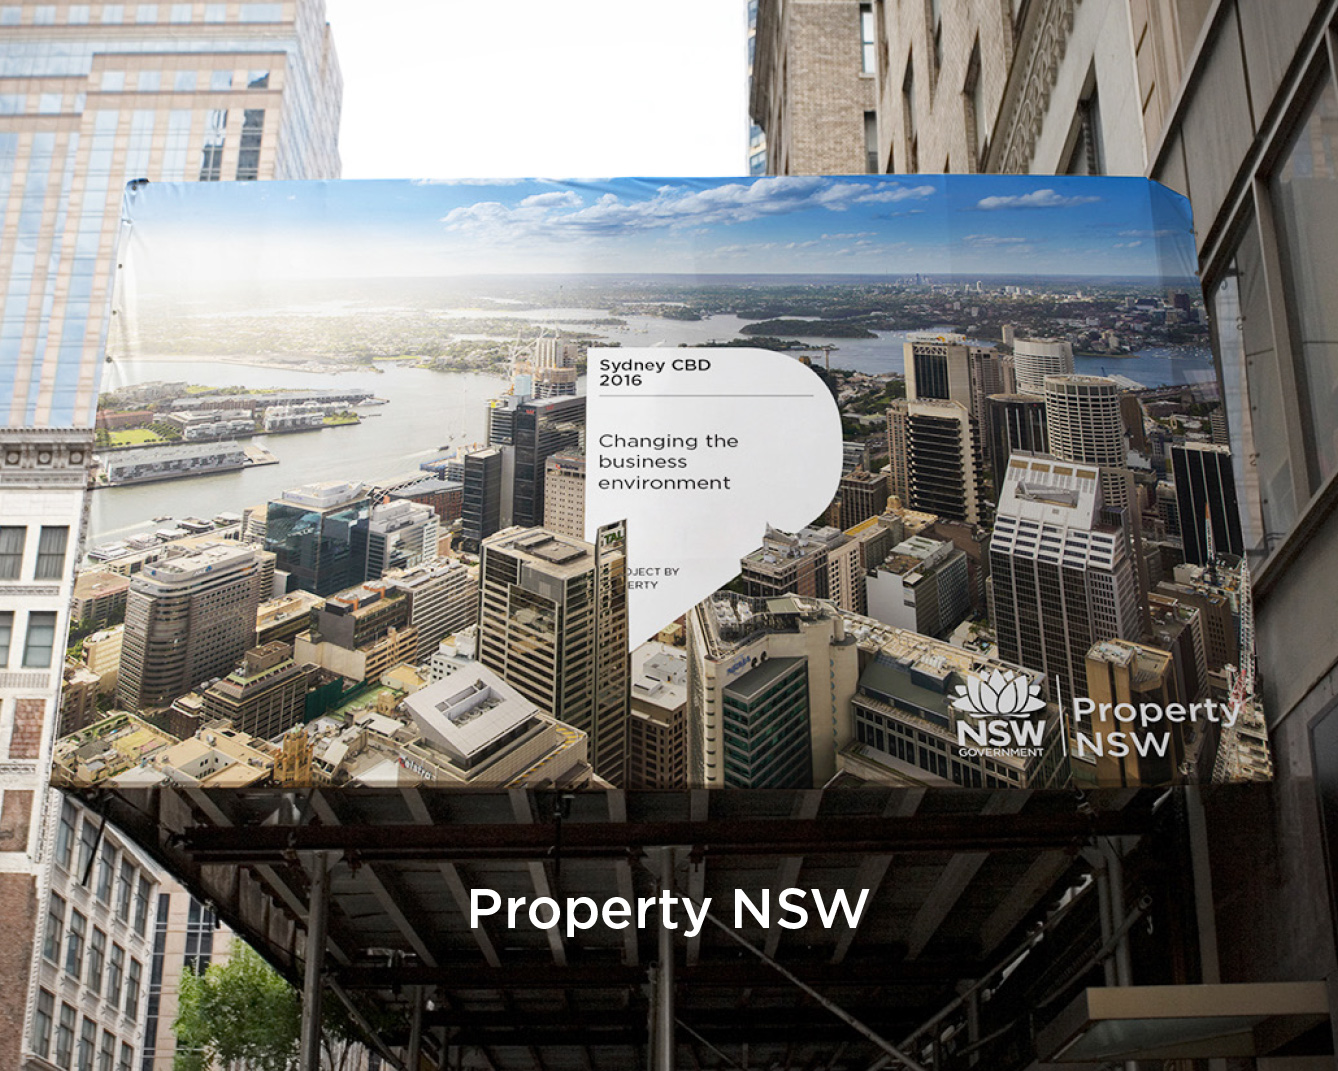 Client Work - Property NSW